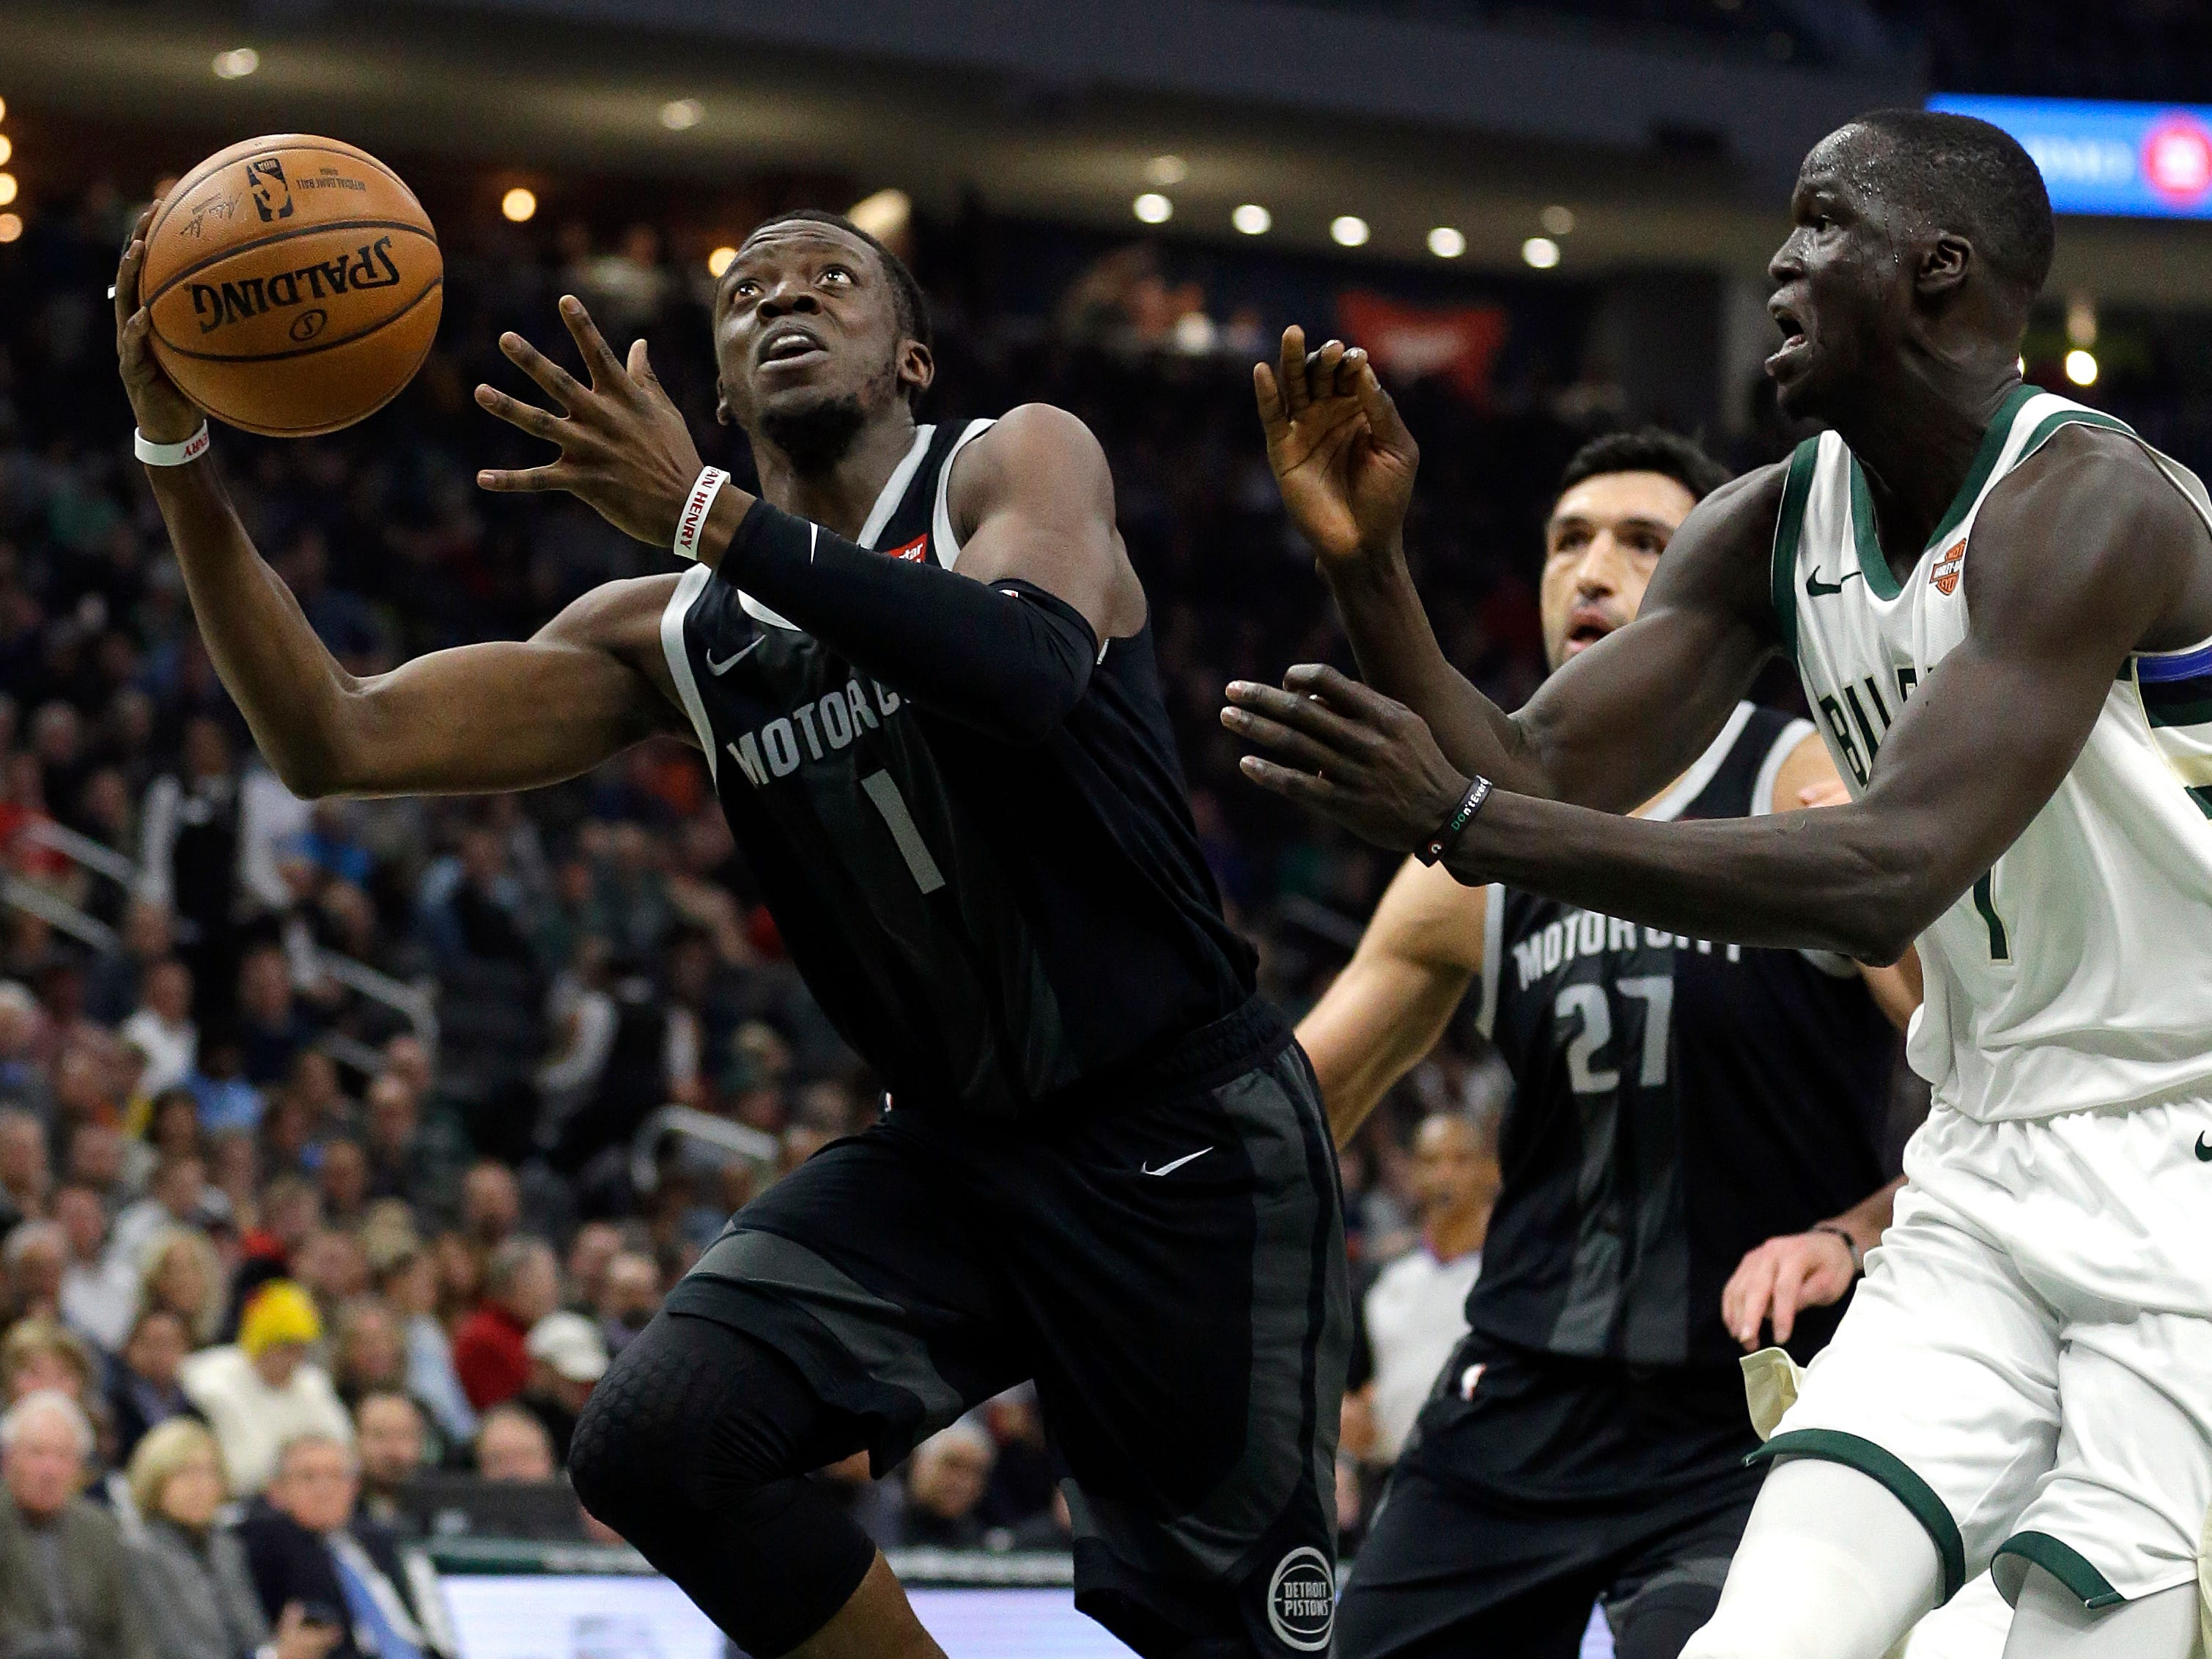 Detroit's Reggie Jackson puts up a shot past Milwaukee's Thon Maker during the first half.